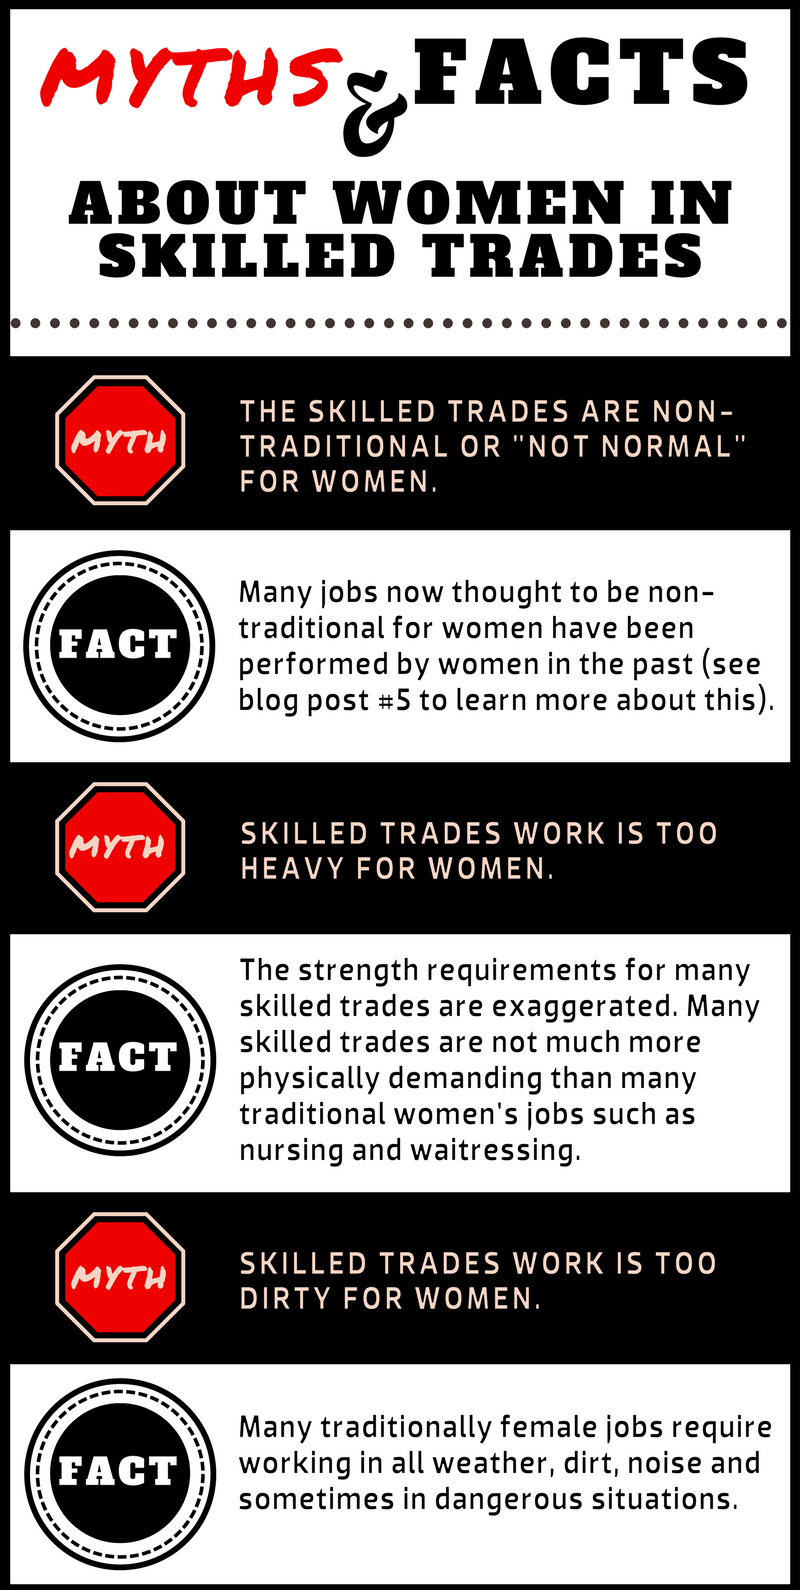 Myths and facts about women in the skilled trades